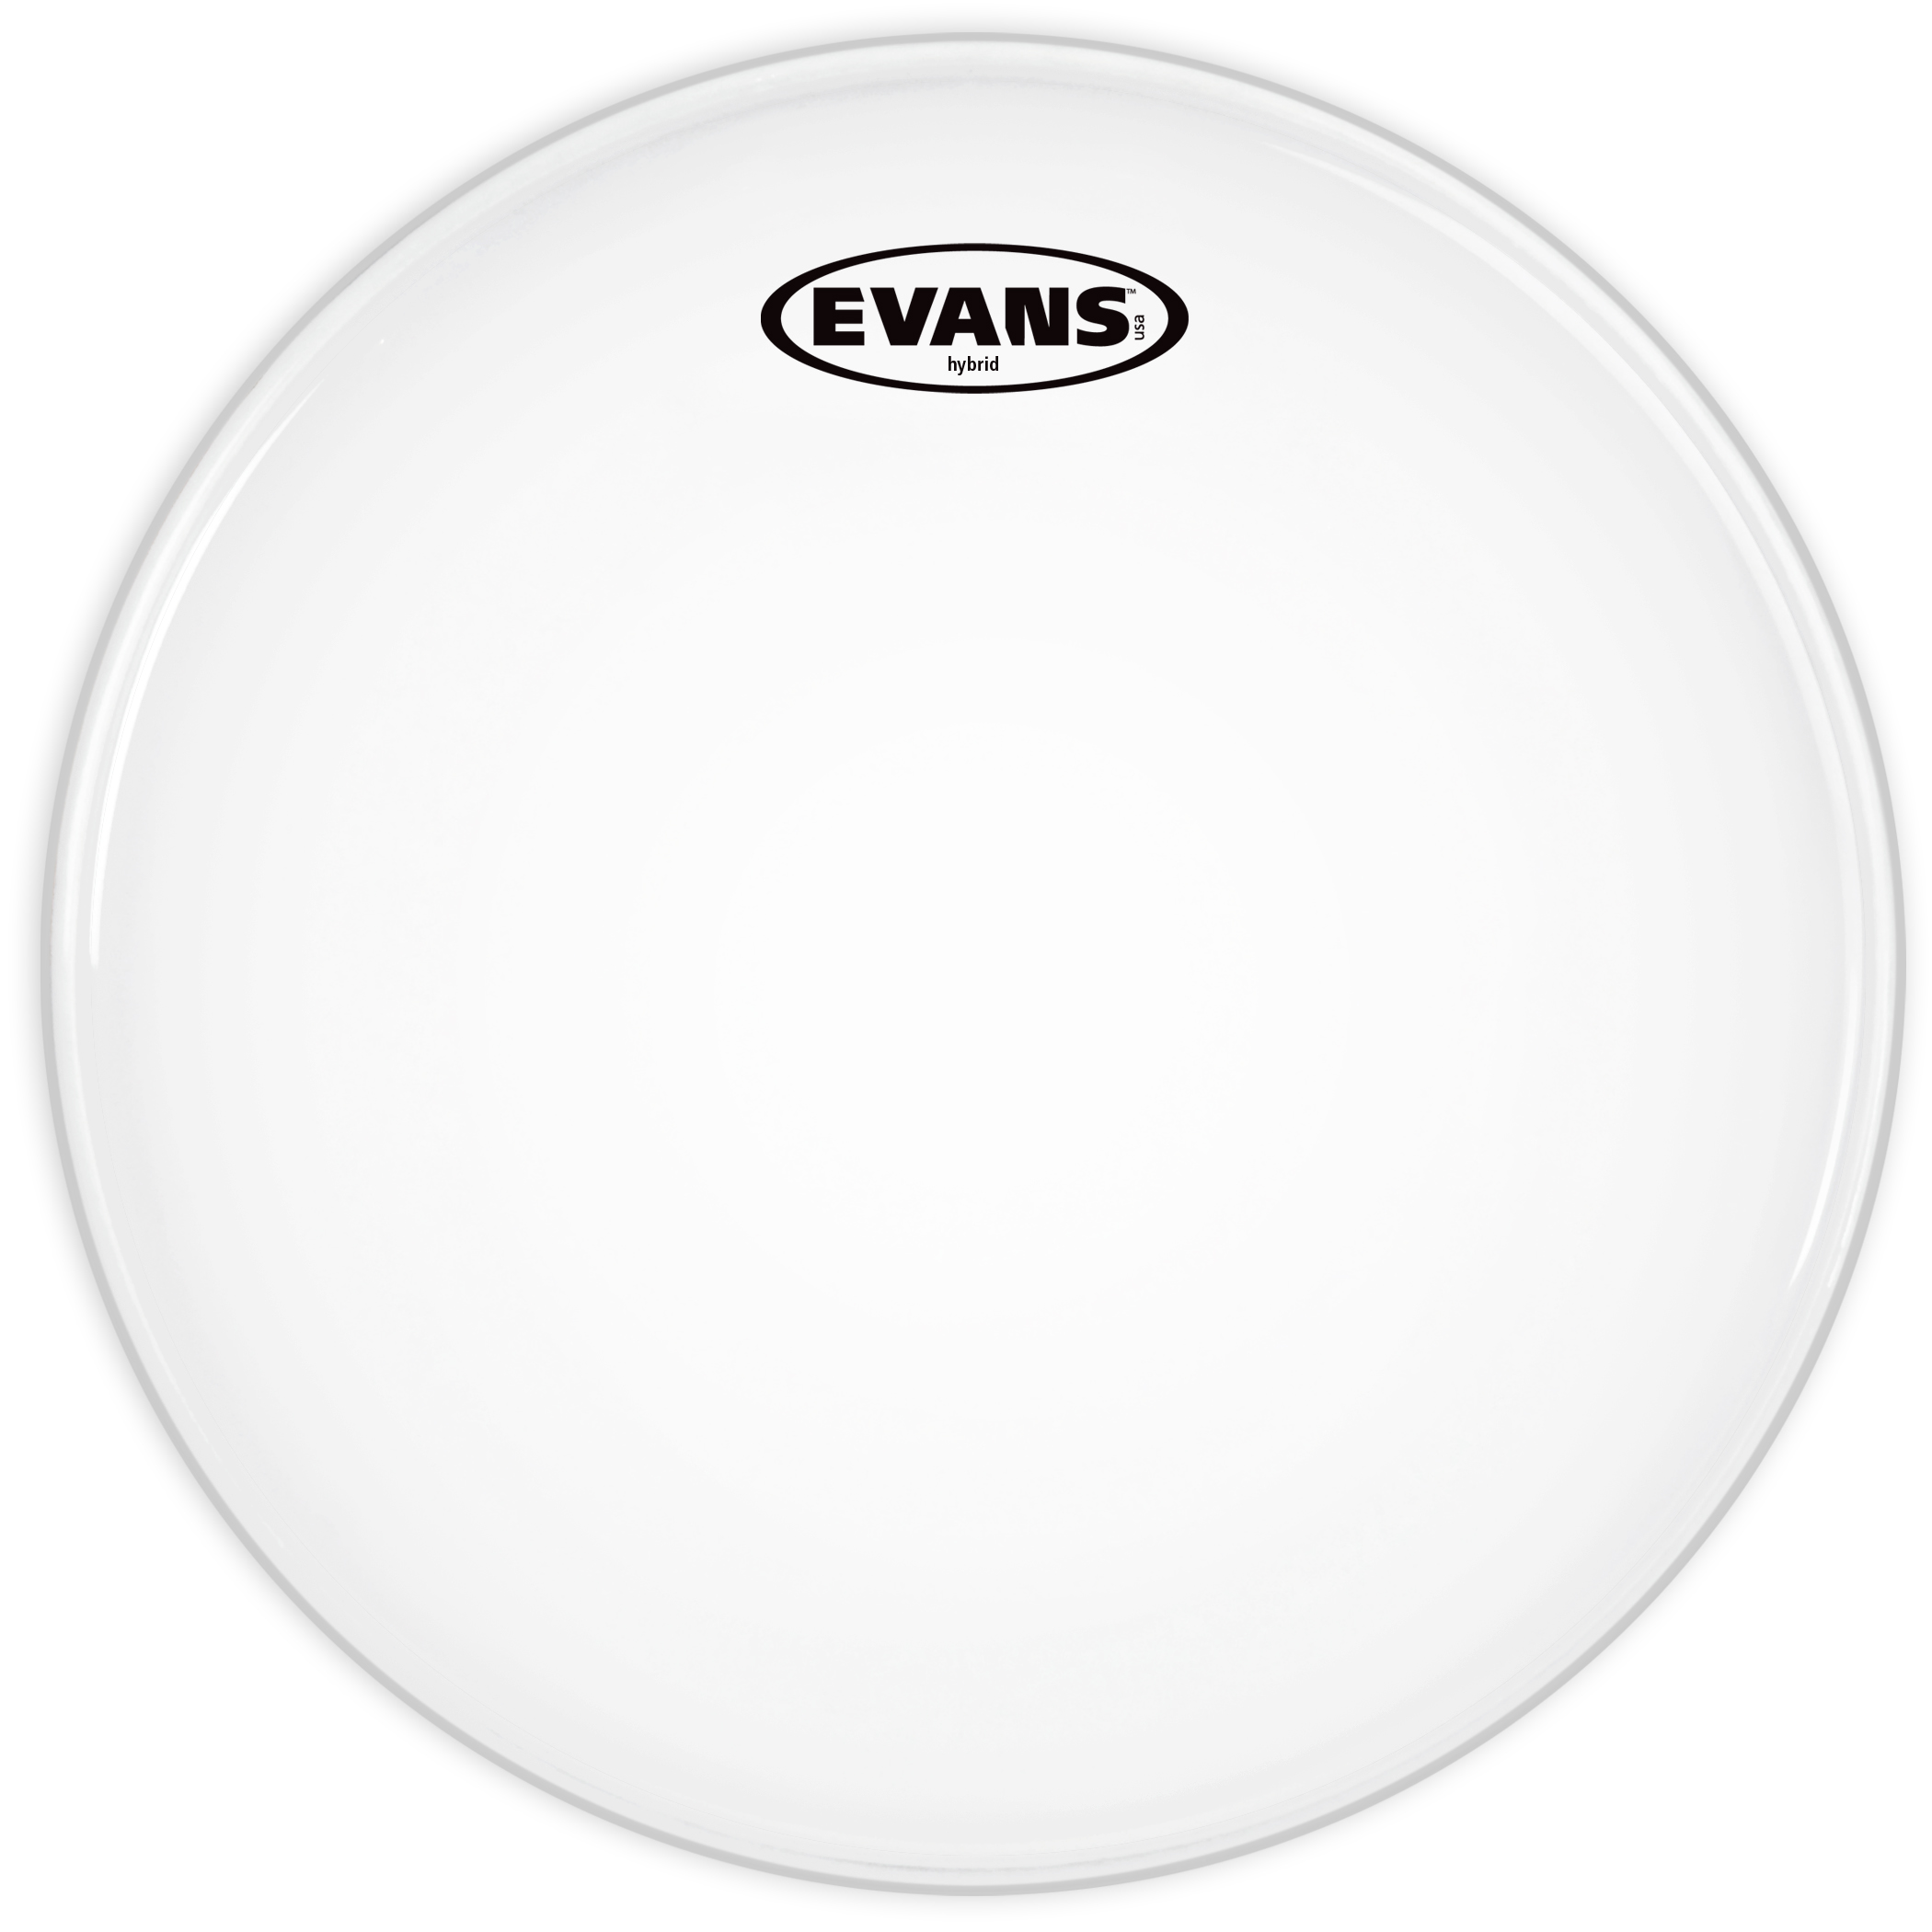 Evans Hybrid White Marching Snare Drum Head 13 Inch